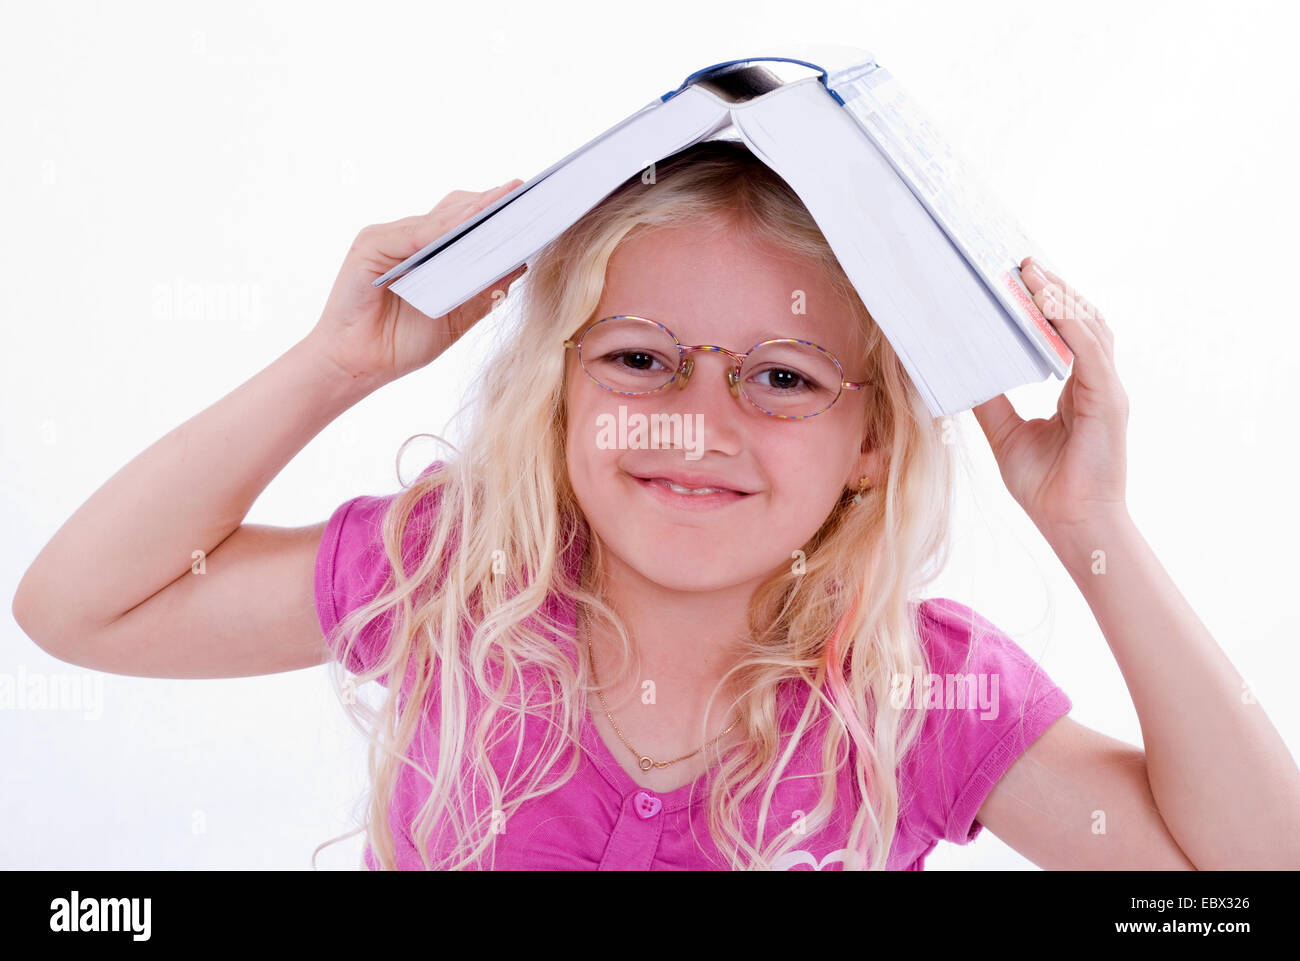 girl with book on her head Stock Photo